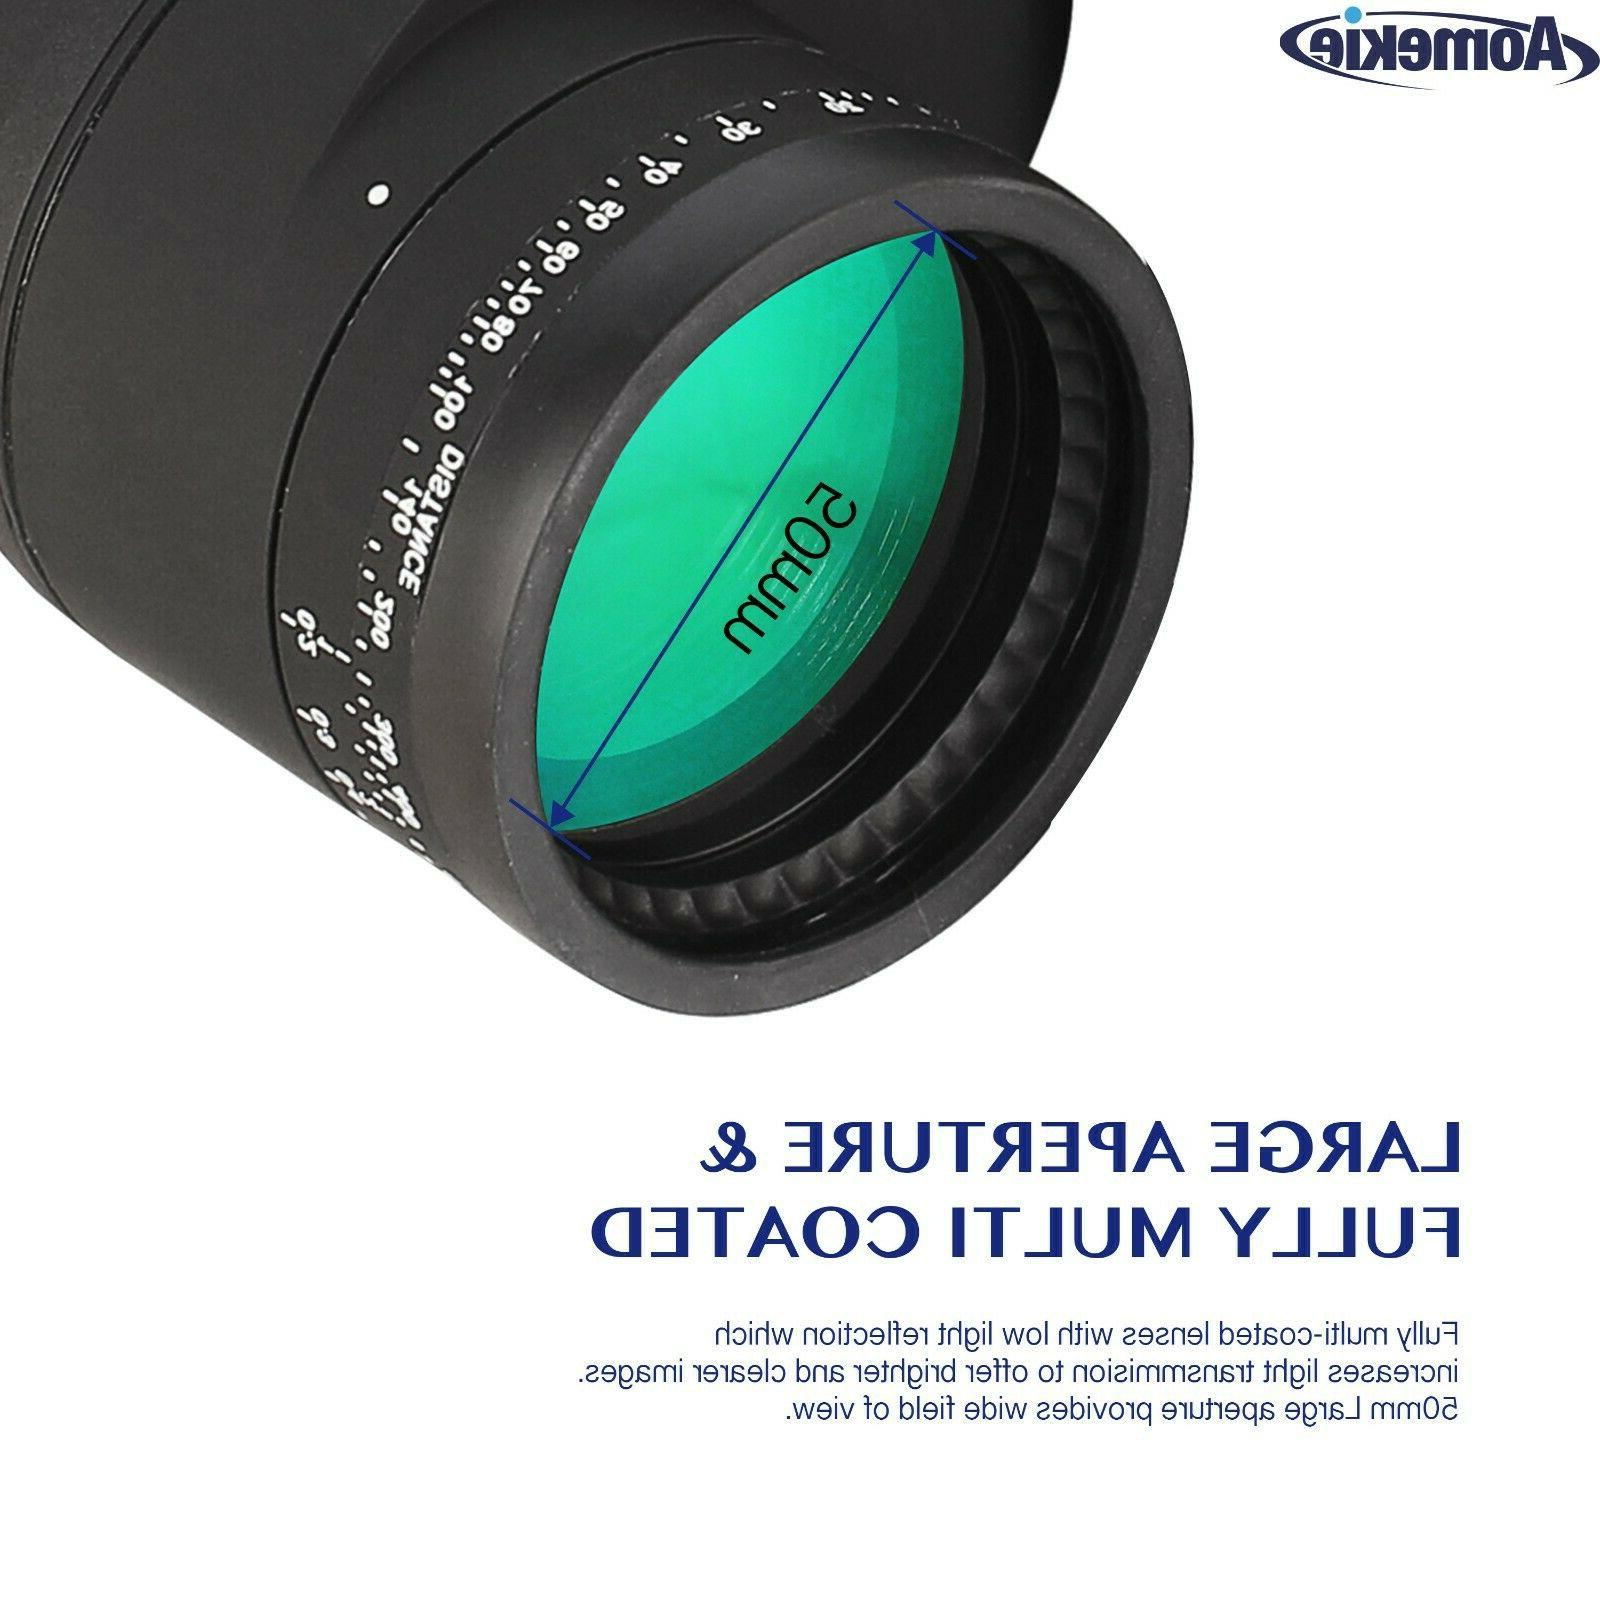 10X50 Light Vision Binoculars with Rangefinder Compass for Hunting